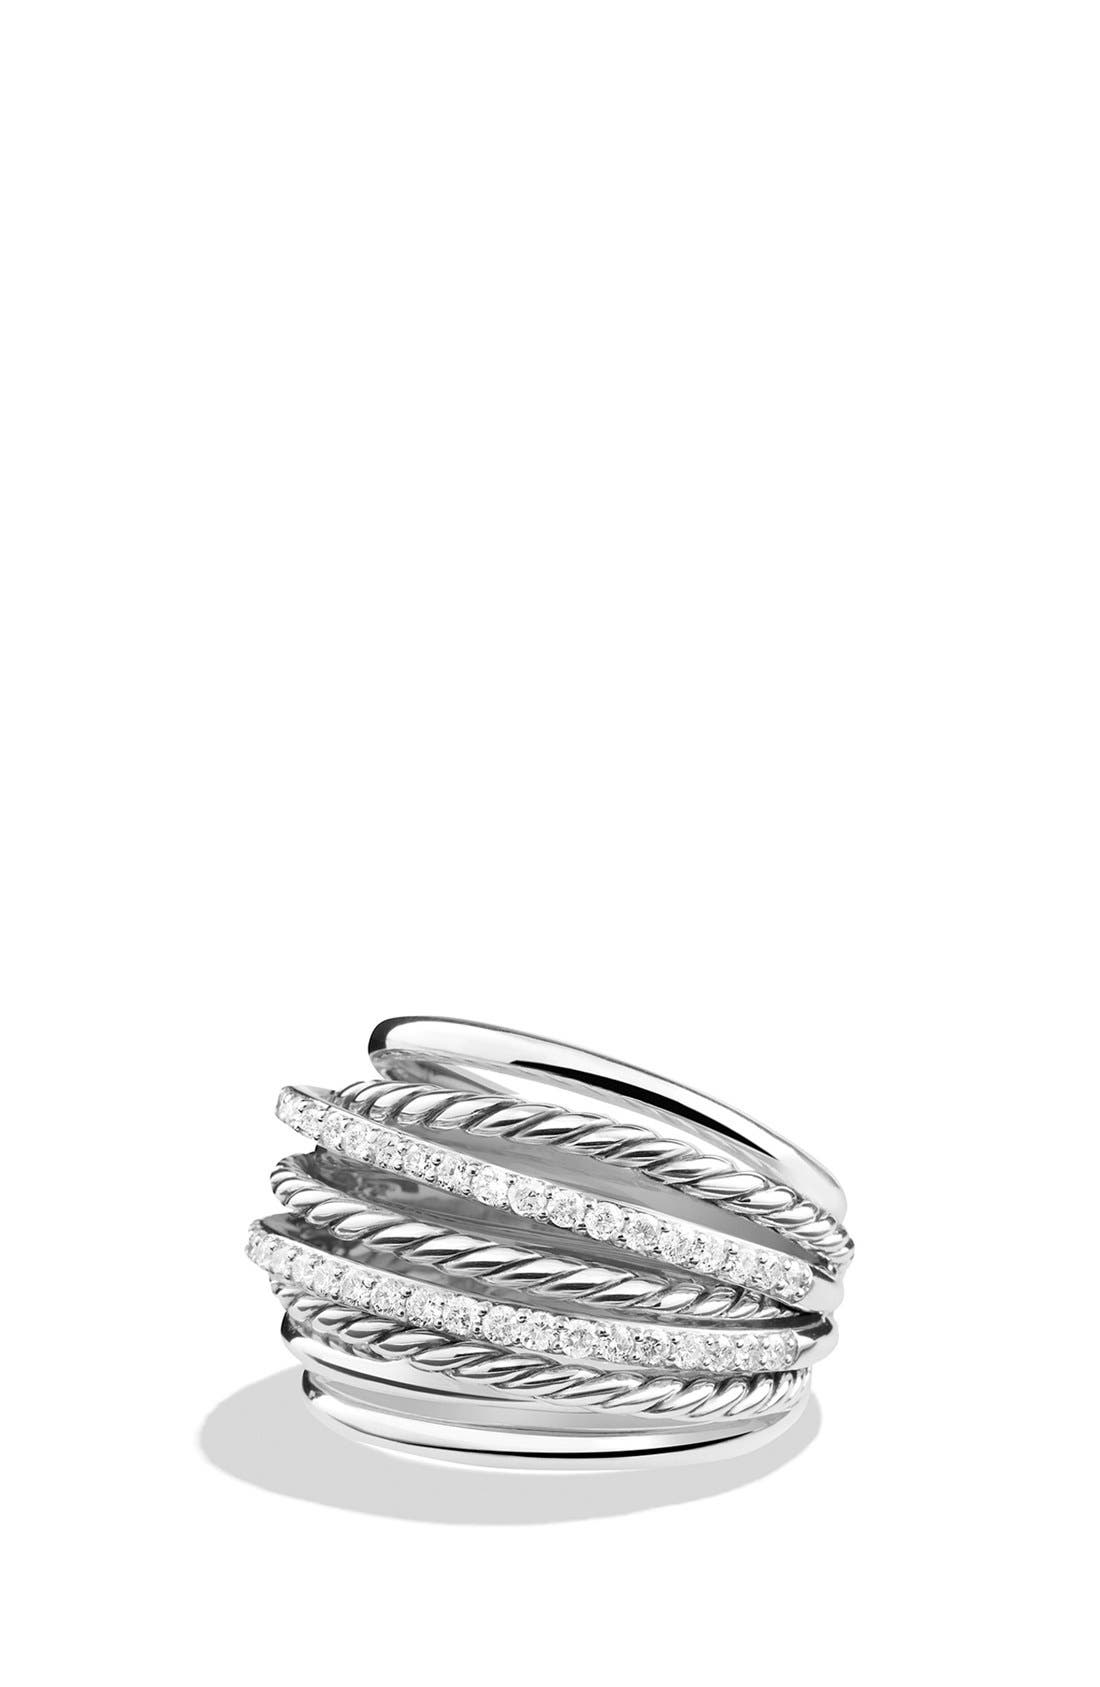 'Crossover' Dome Ring with Diamonds,                             Main thumbnail 1, color,                             DIAMOND